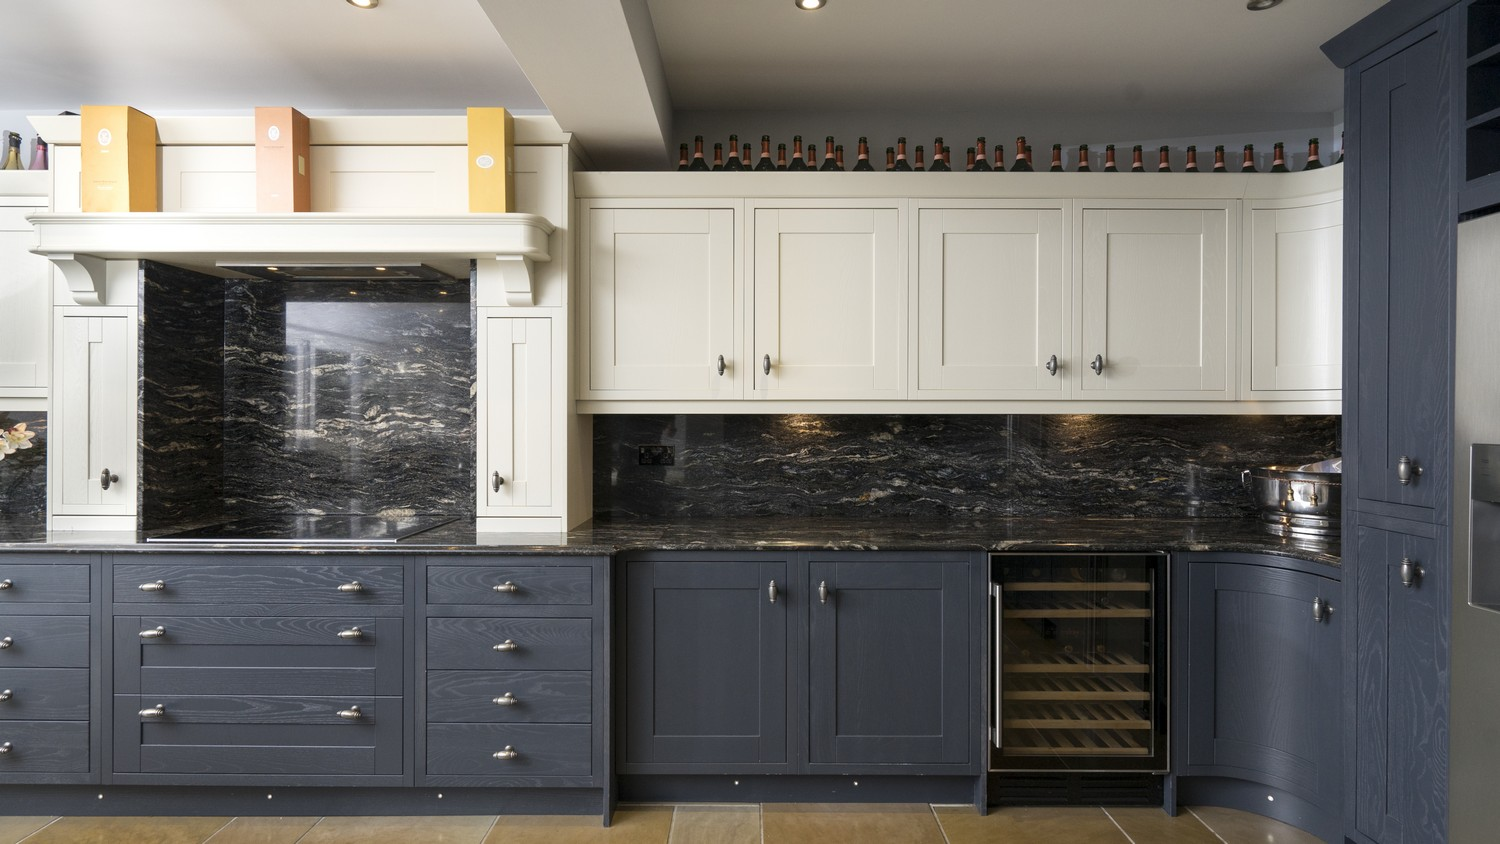 Timber Shaker Kitchens Liverpool, designed and supplied in Ormskirk, Liverpool